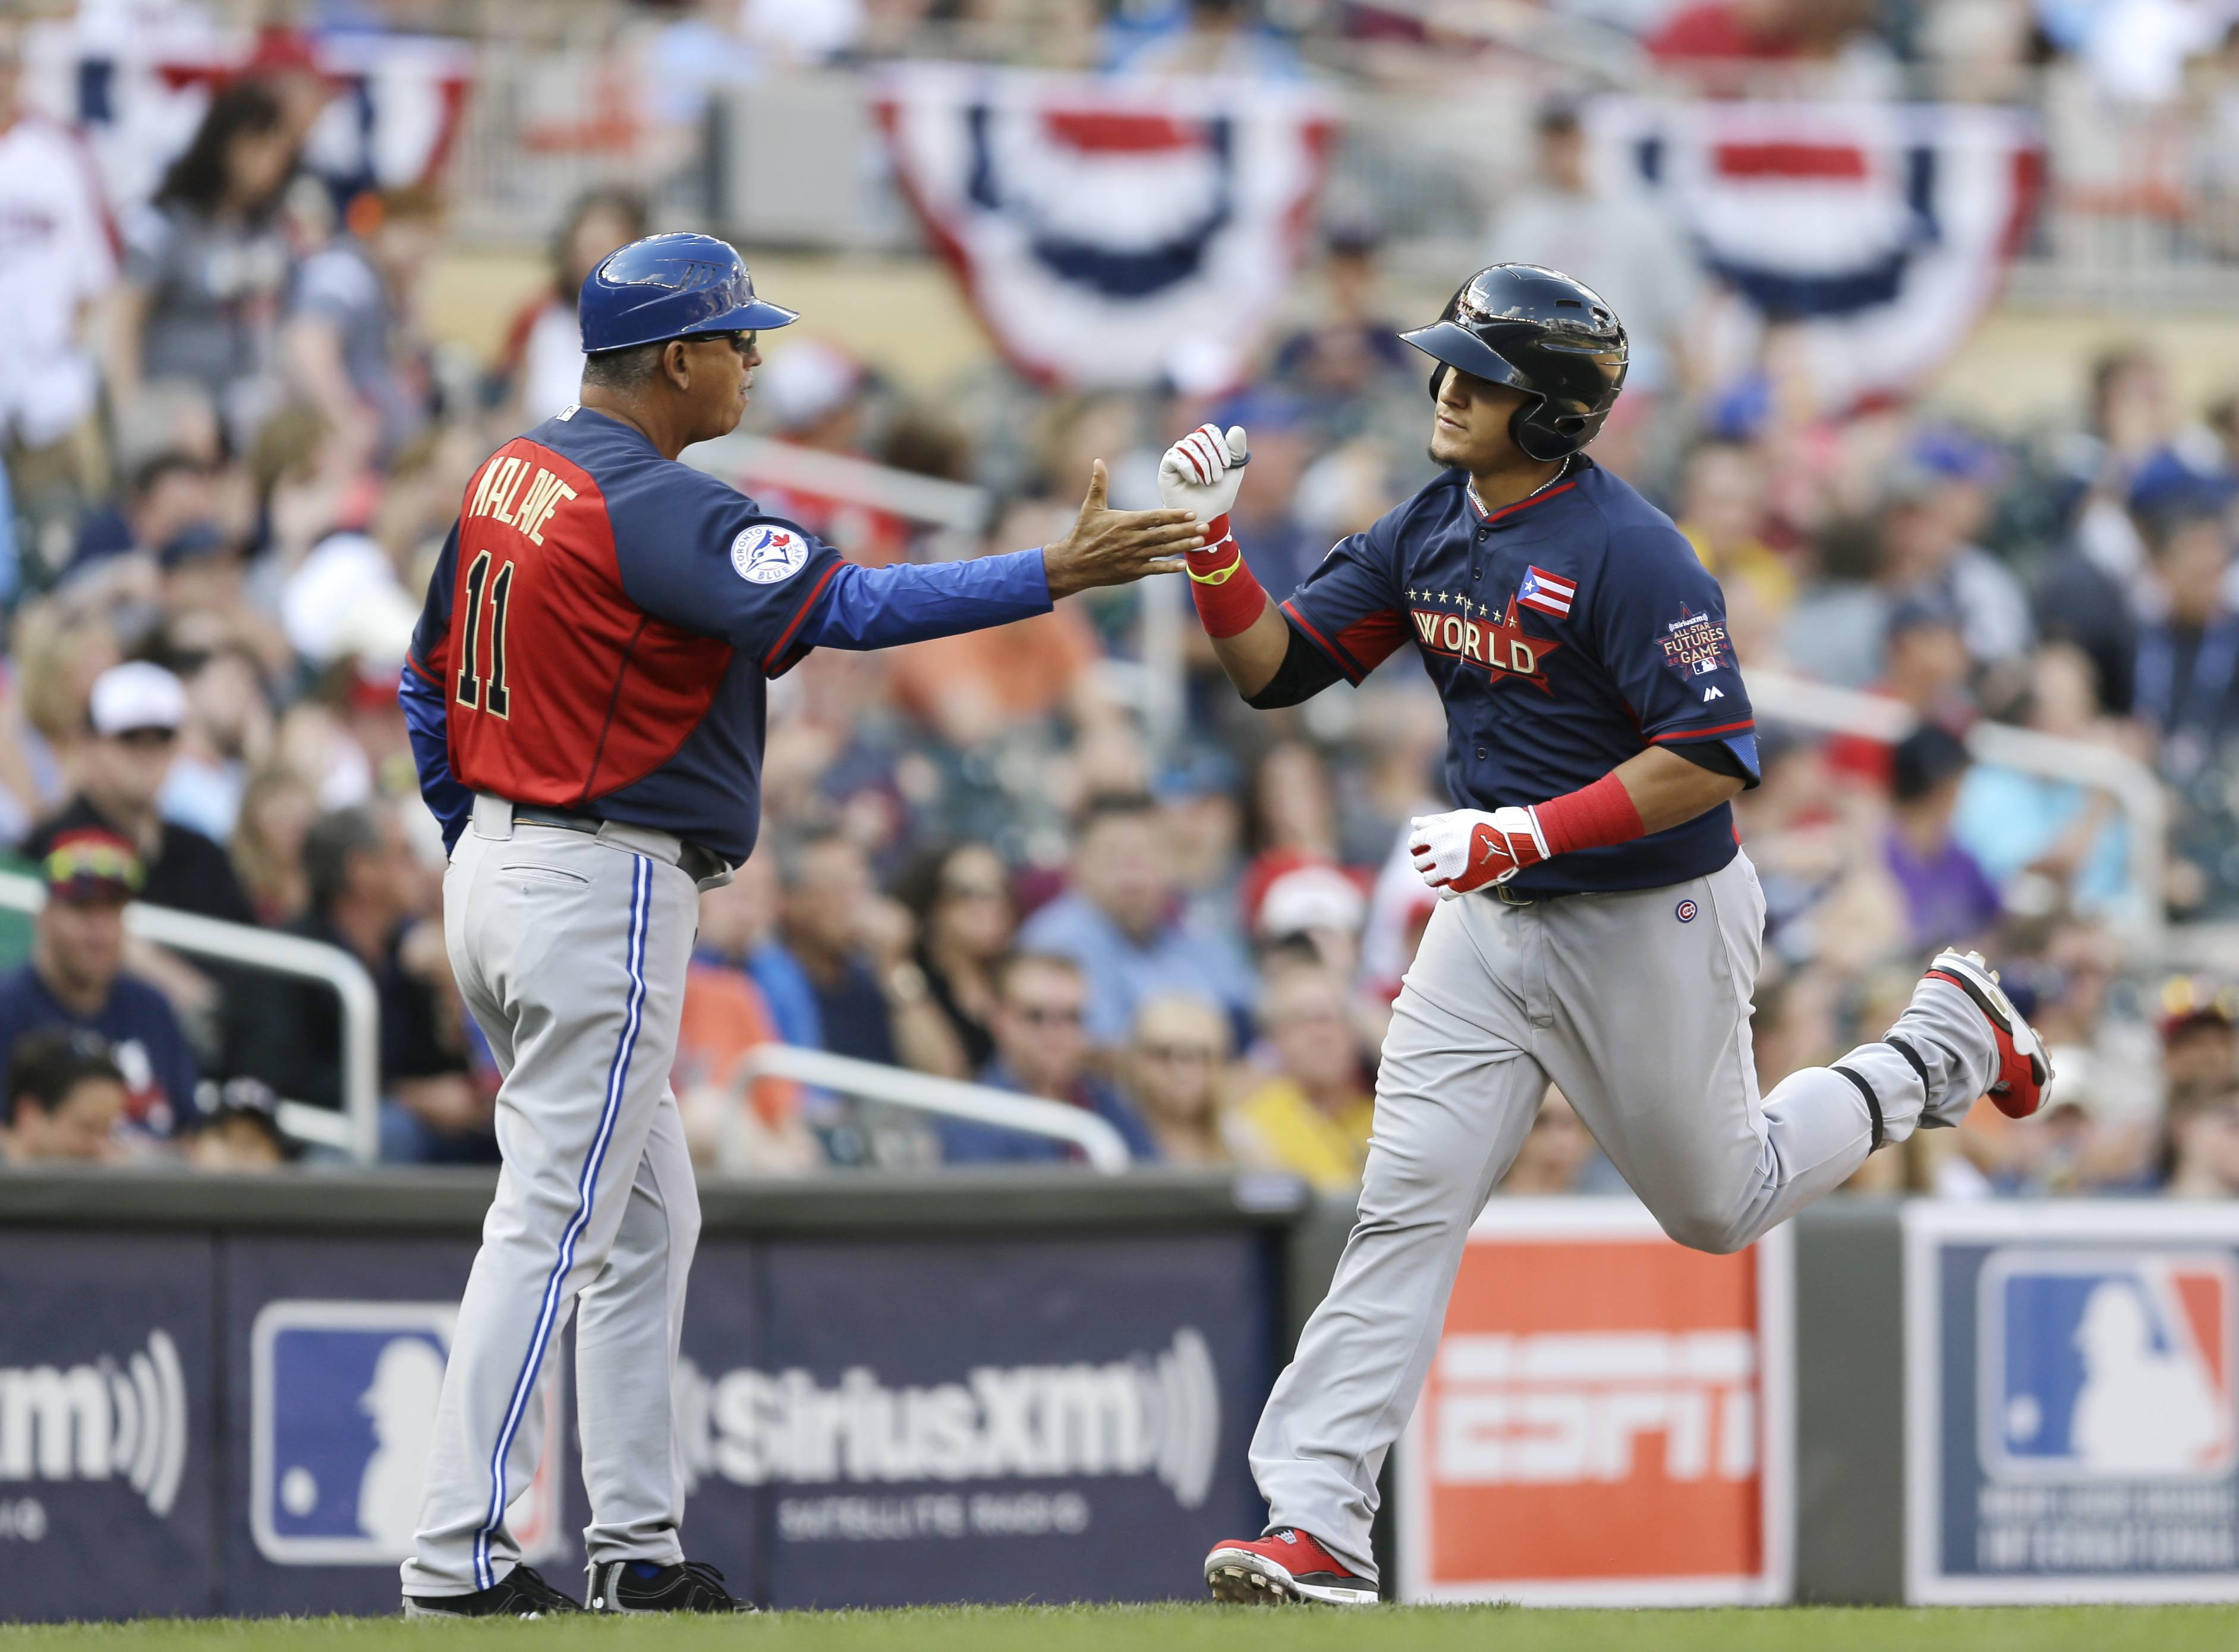 Cubs prospect Javier Baez, right, is greeted by third base coach Omar Malave, left, after hitting a two-run home run for the Worlds in the sixth inning of the All-Star Futures baseball game against the United States, Sunday, July 13, 2014, in Minneapolis.